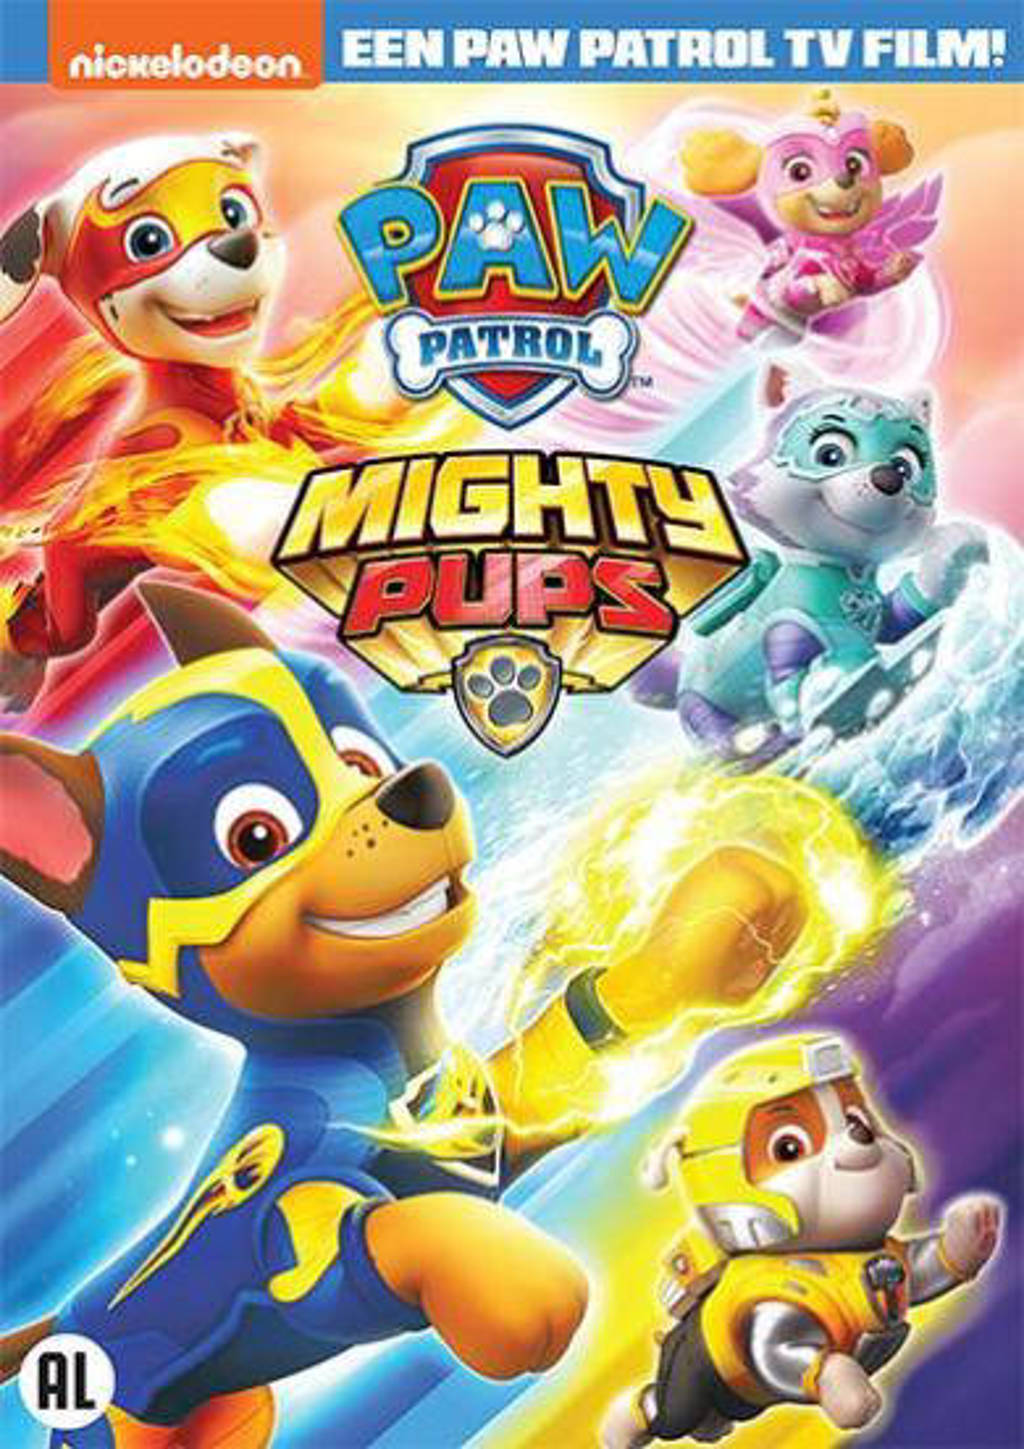 Paw patrol - Mighty pups (DVD)